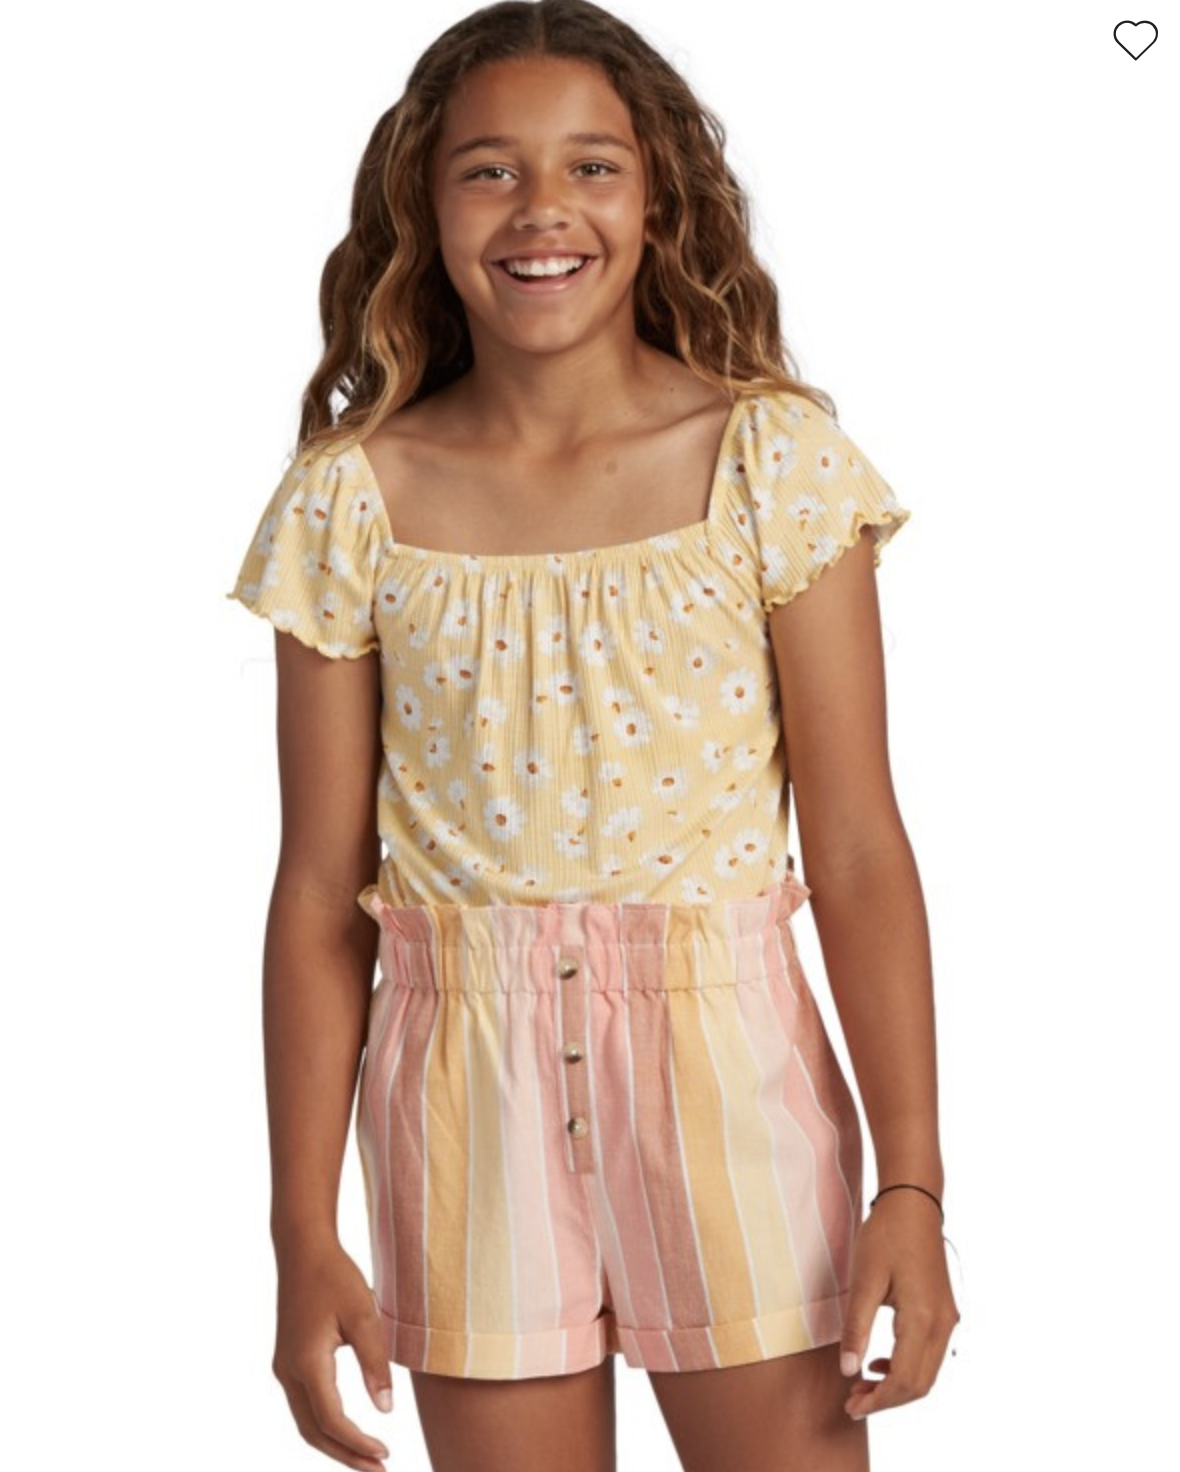 Girl's It's All Daisy Top